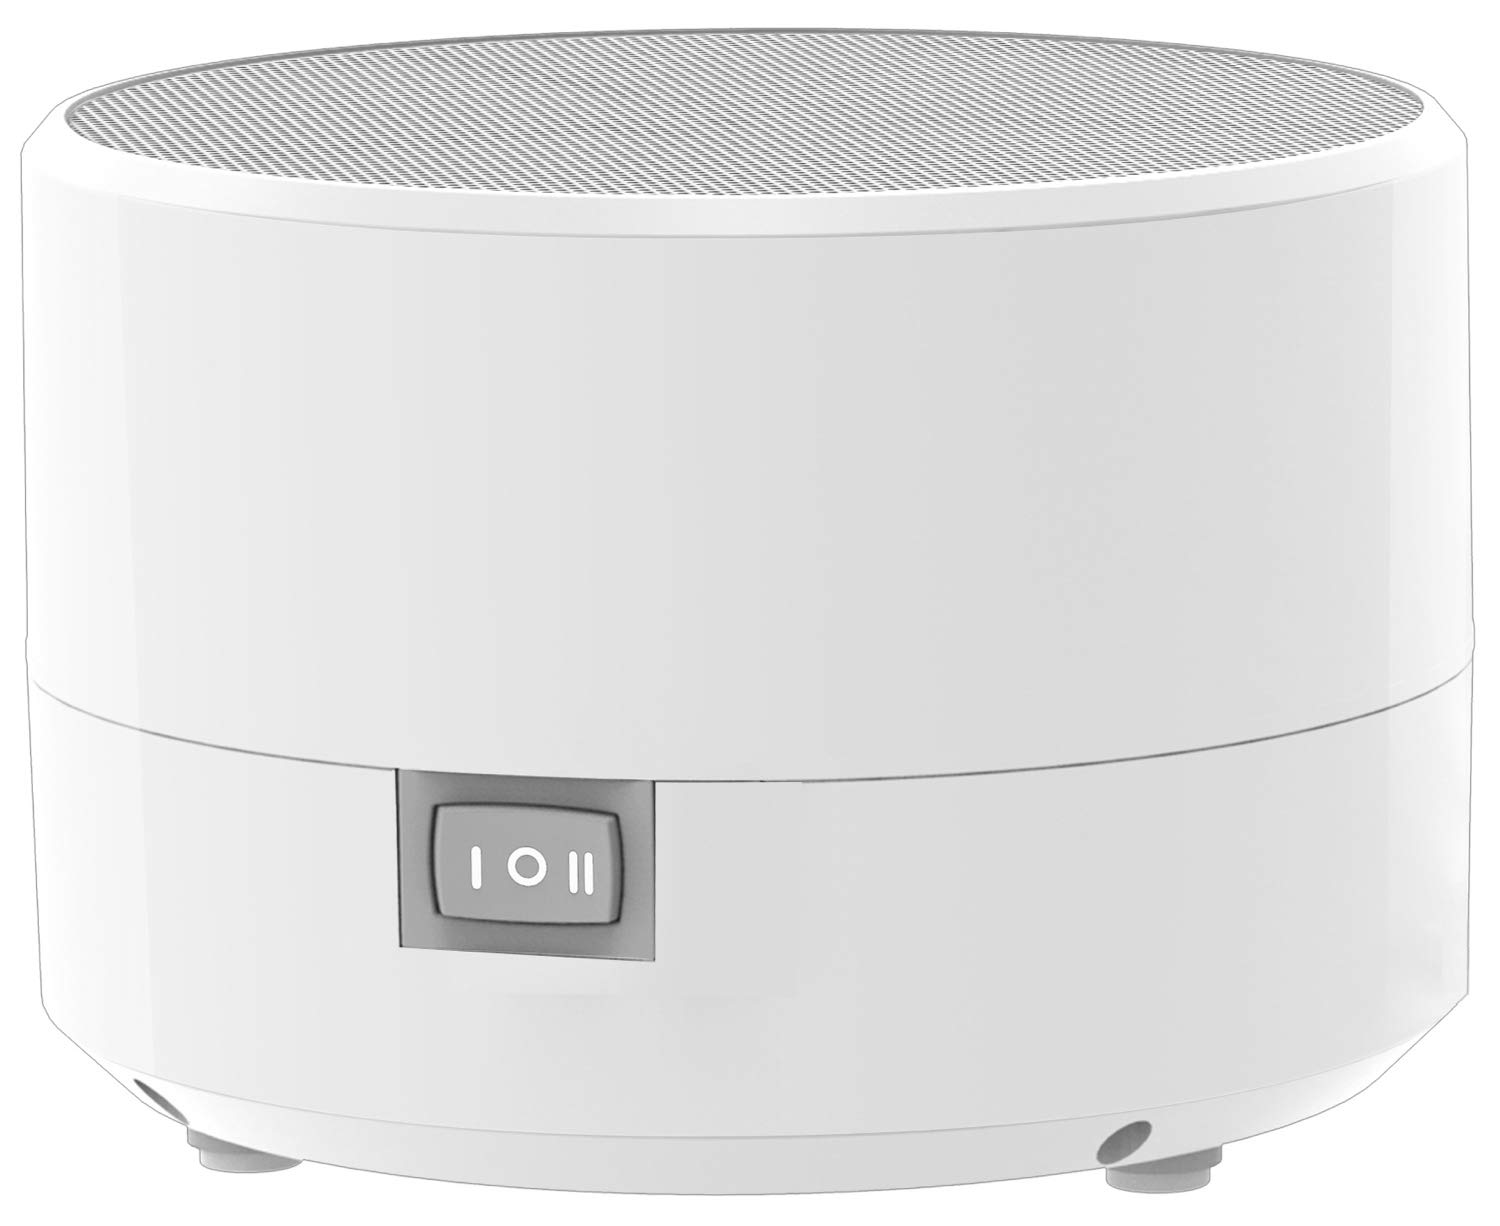 Big Red Rooster White Noise Sound Machine | Real Fan Inside | Non-Looping White Noise | Sound Machine for Sleeping & Relaxation | Sleep Sound Therapy for Home | Office Privacy by Big Red Rooster